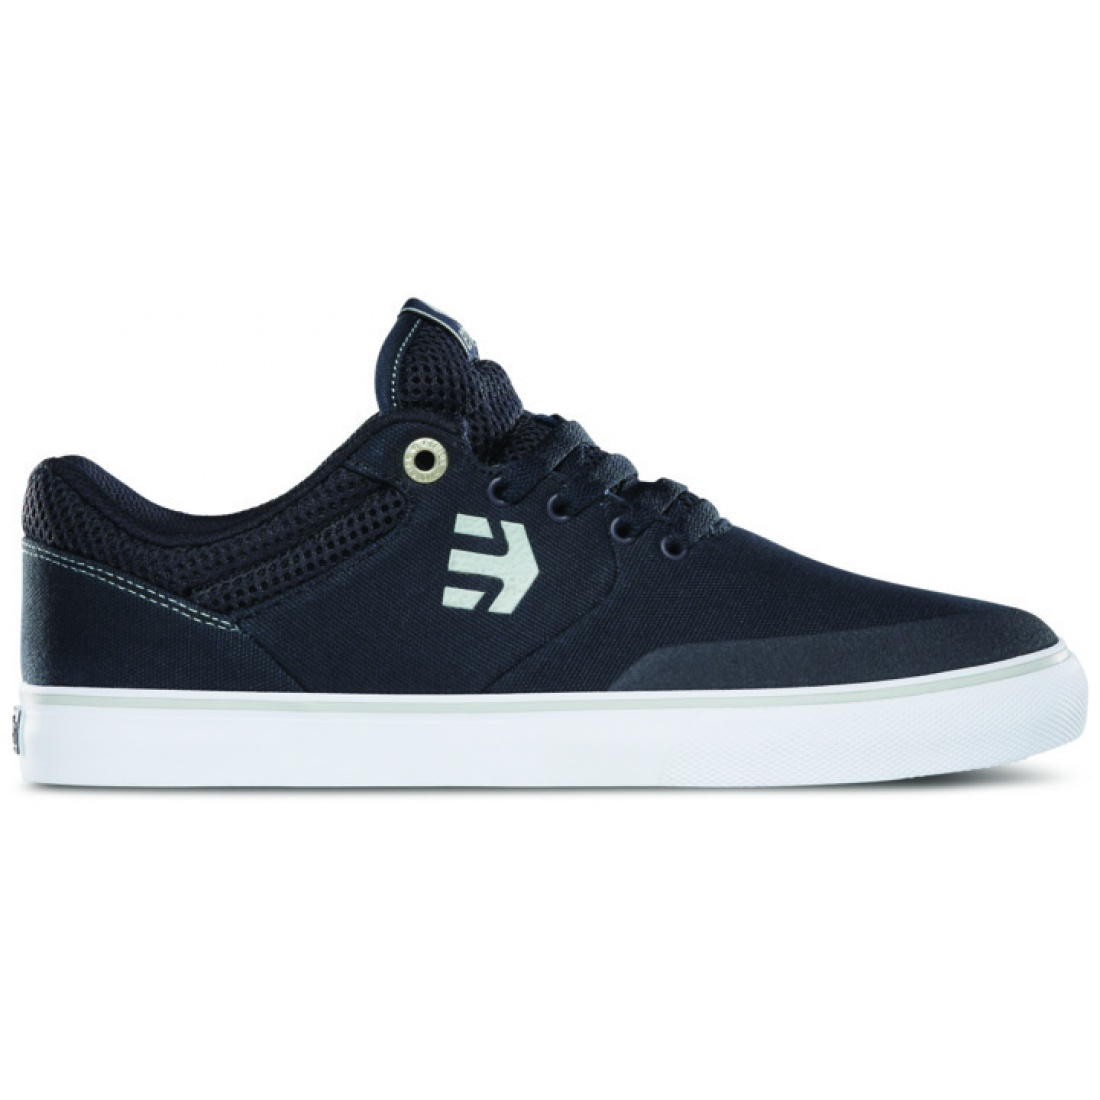 ETN-Marana Vulc Dark Navy Shoes